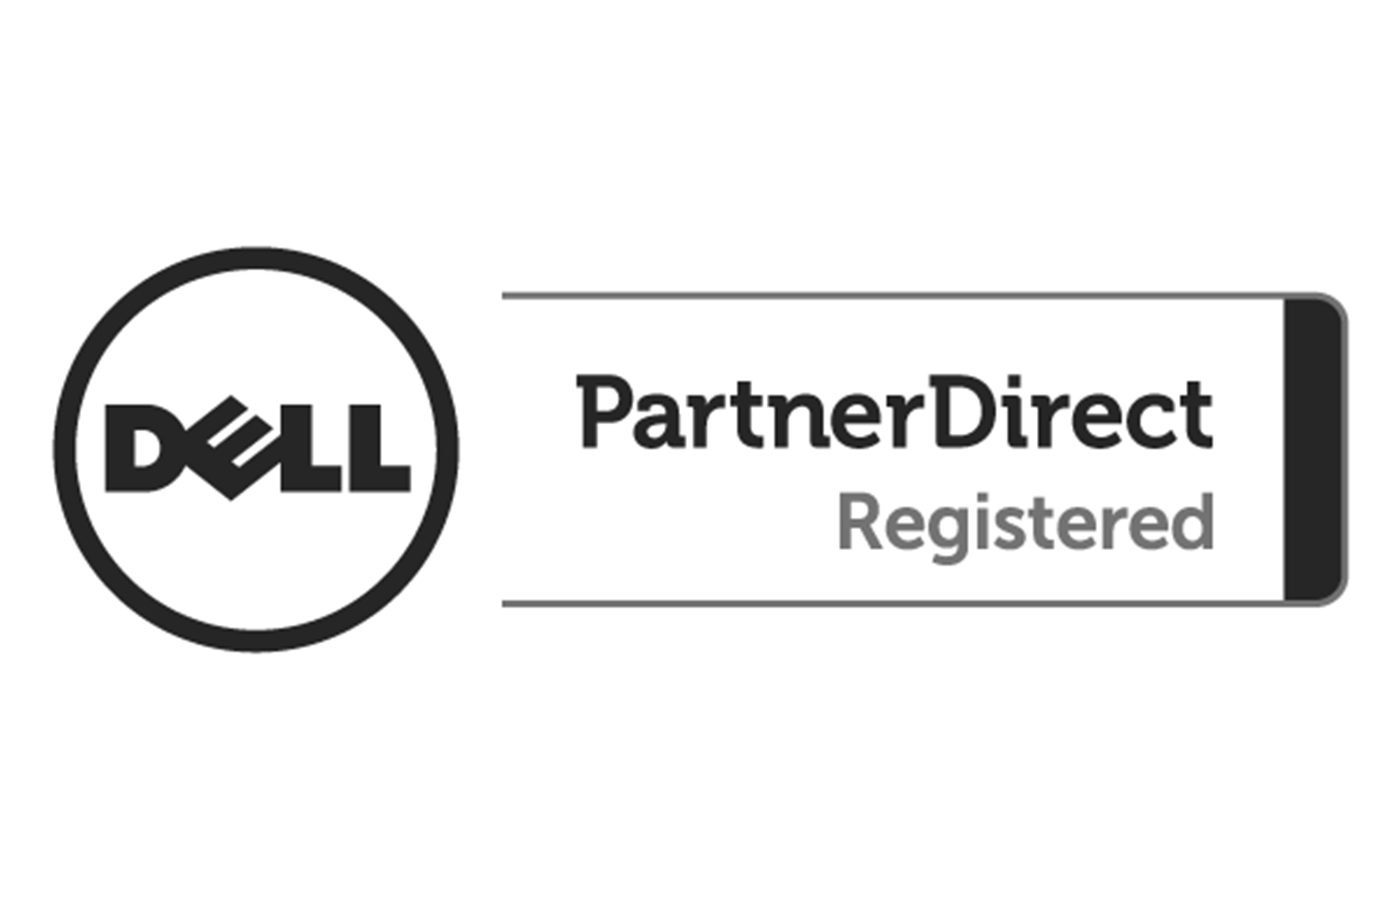 Dell It Infrastructure Partner